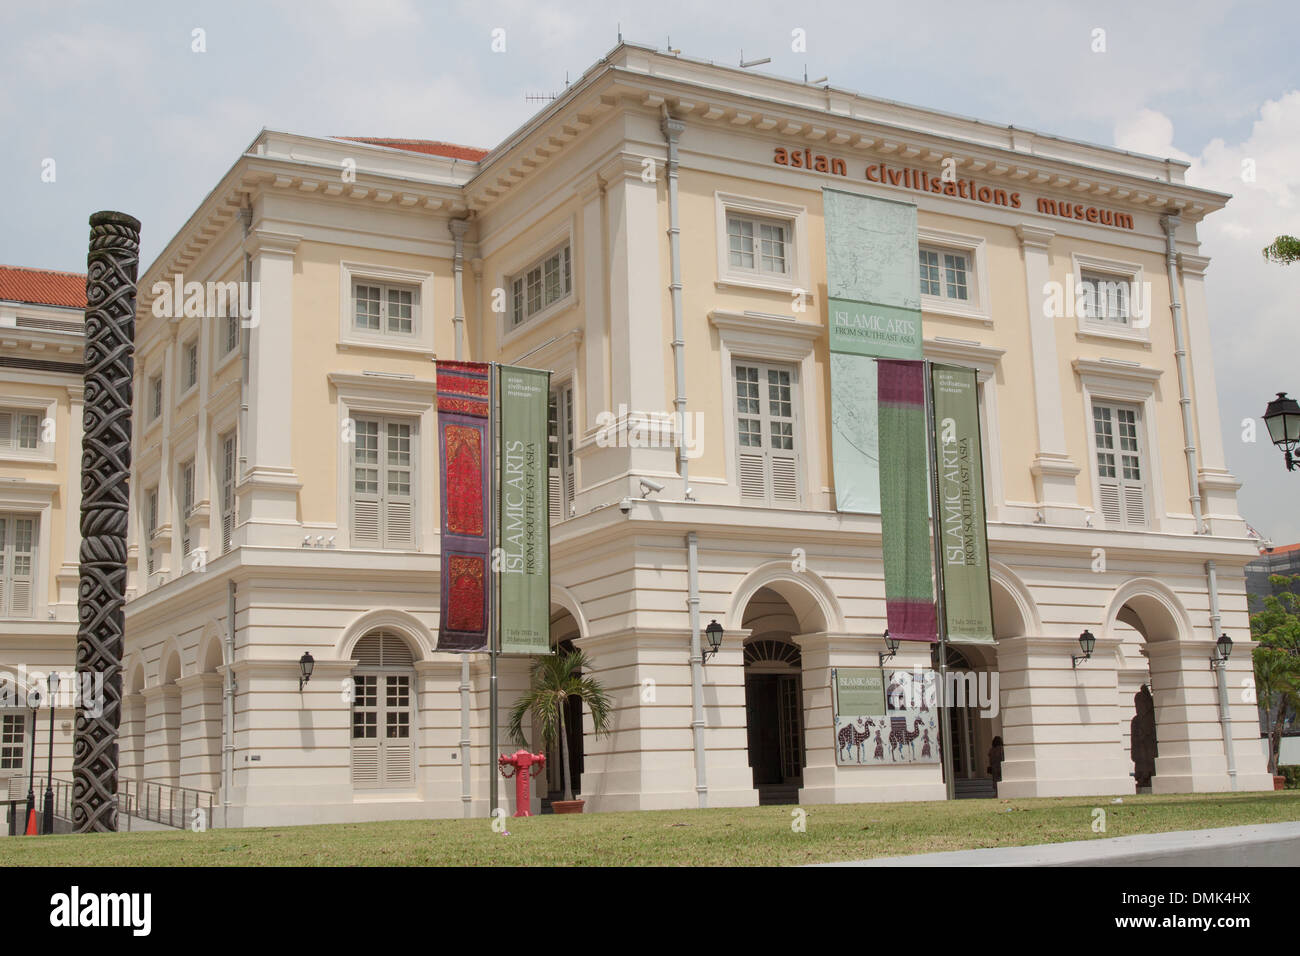 FACADE OF THE ASIAN CIVILISATIONS MUSEUM, HERITAGE DISTRICT, SINGAPORE - Stock Image